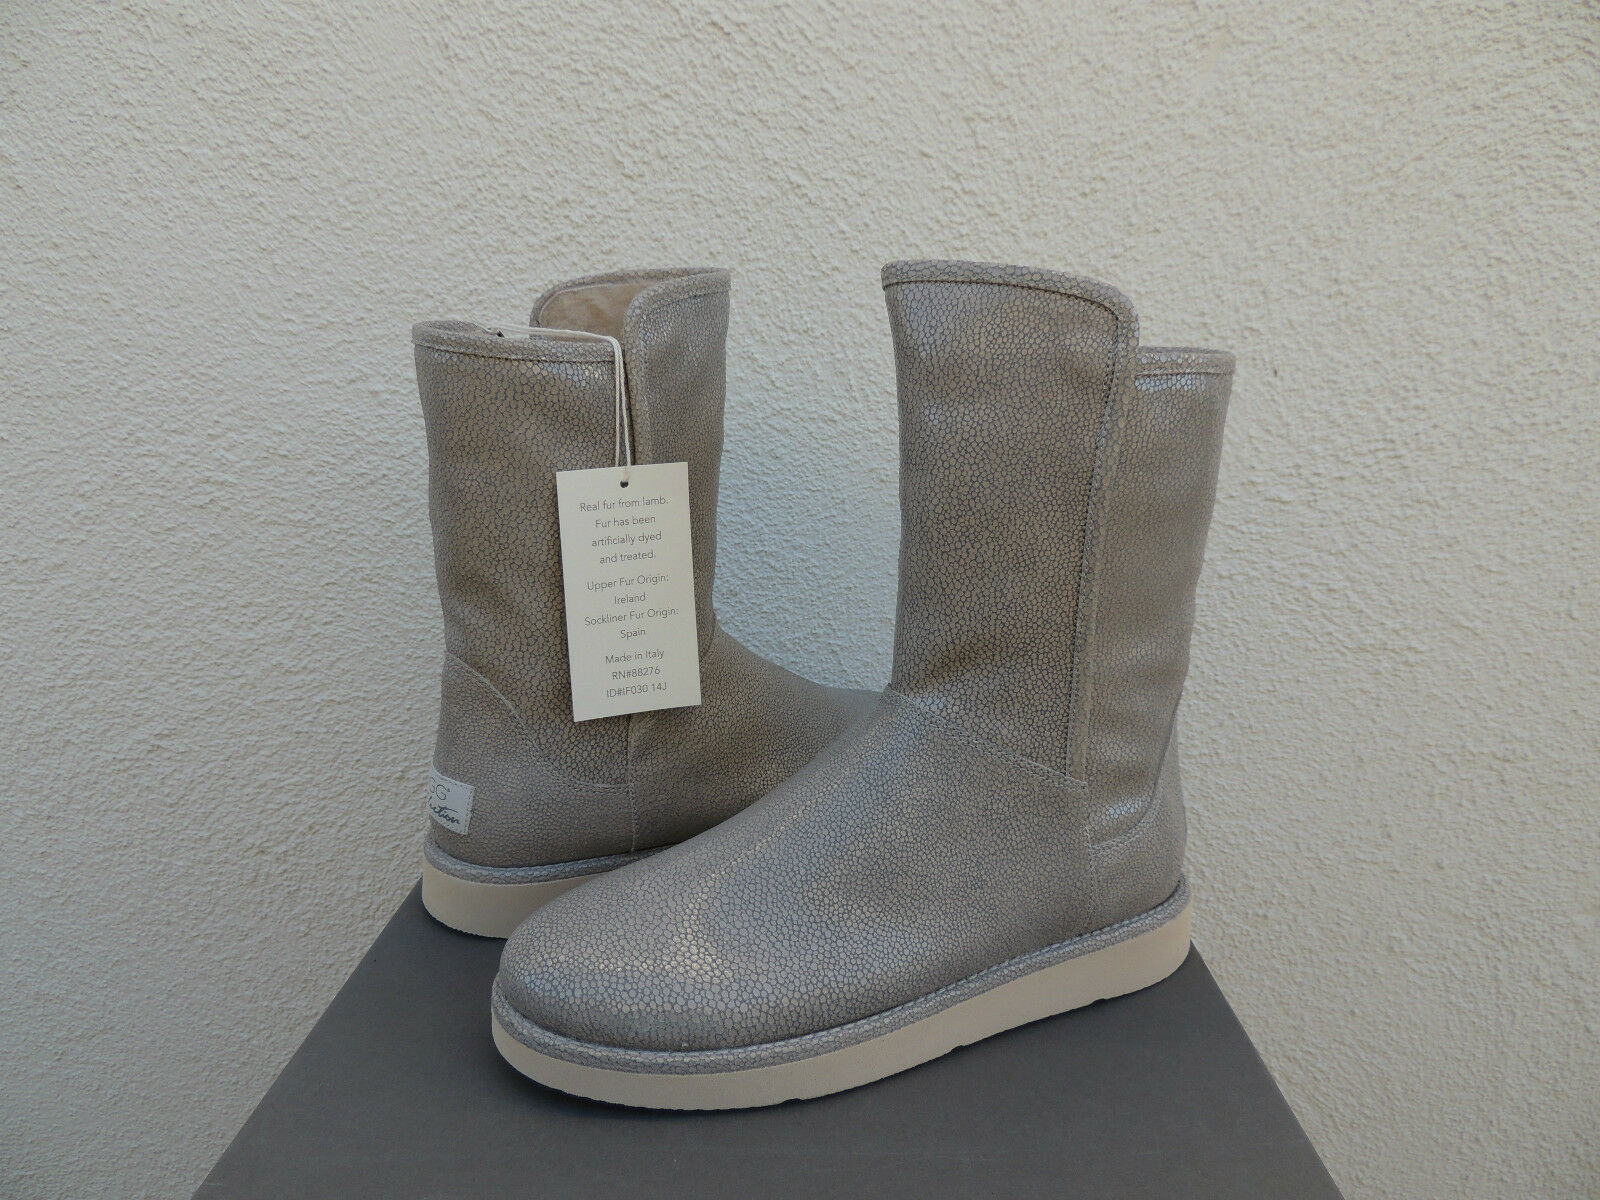 c7c8ecc08f0 UGG Collection Women's Abree Short Stingray BOOTS 1009206ash Made in Italy  Sz 10